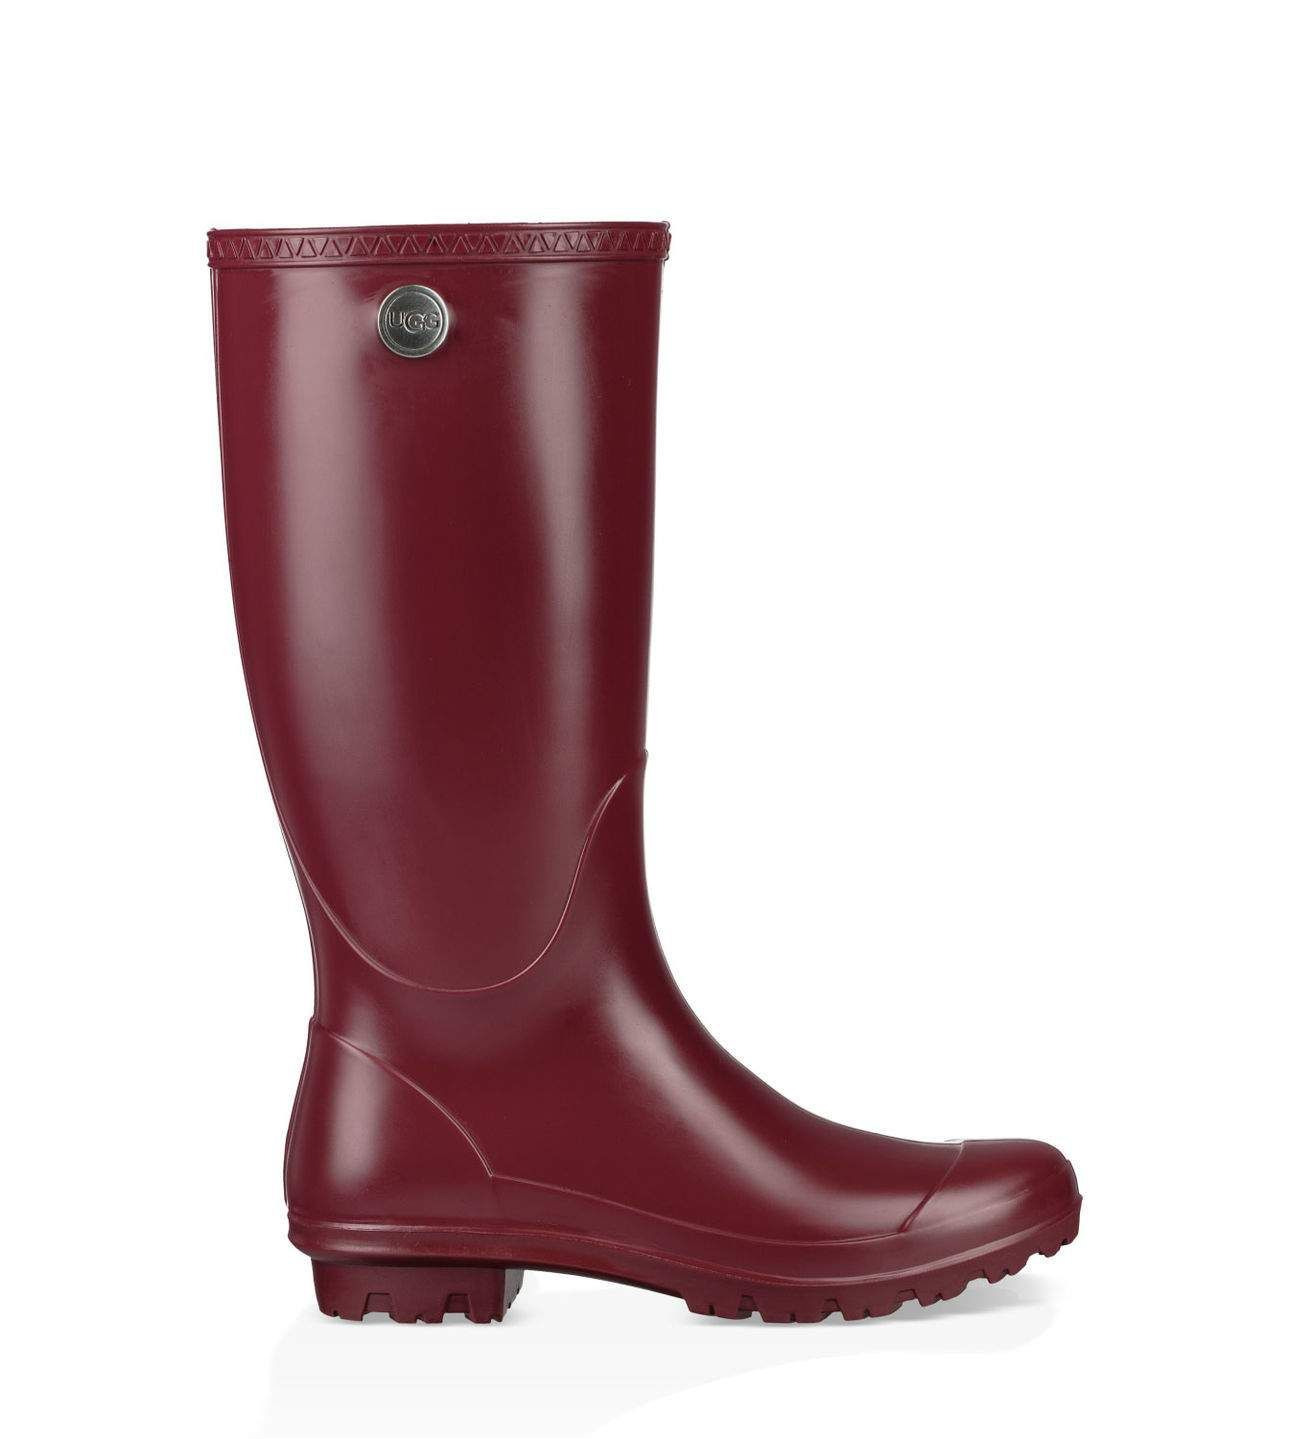 10bb0667184 Women's Share this product Shelby Matte Rain Boot in 2019 | dress me ...